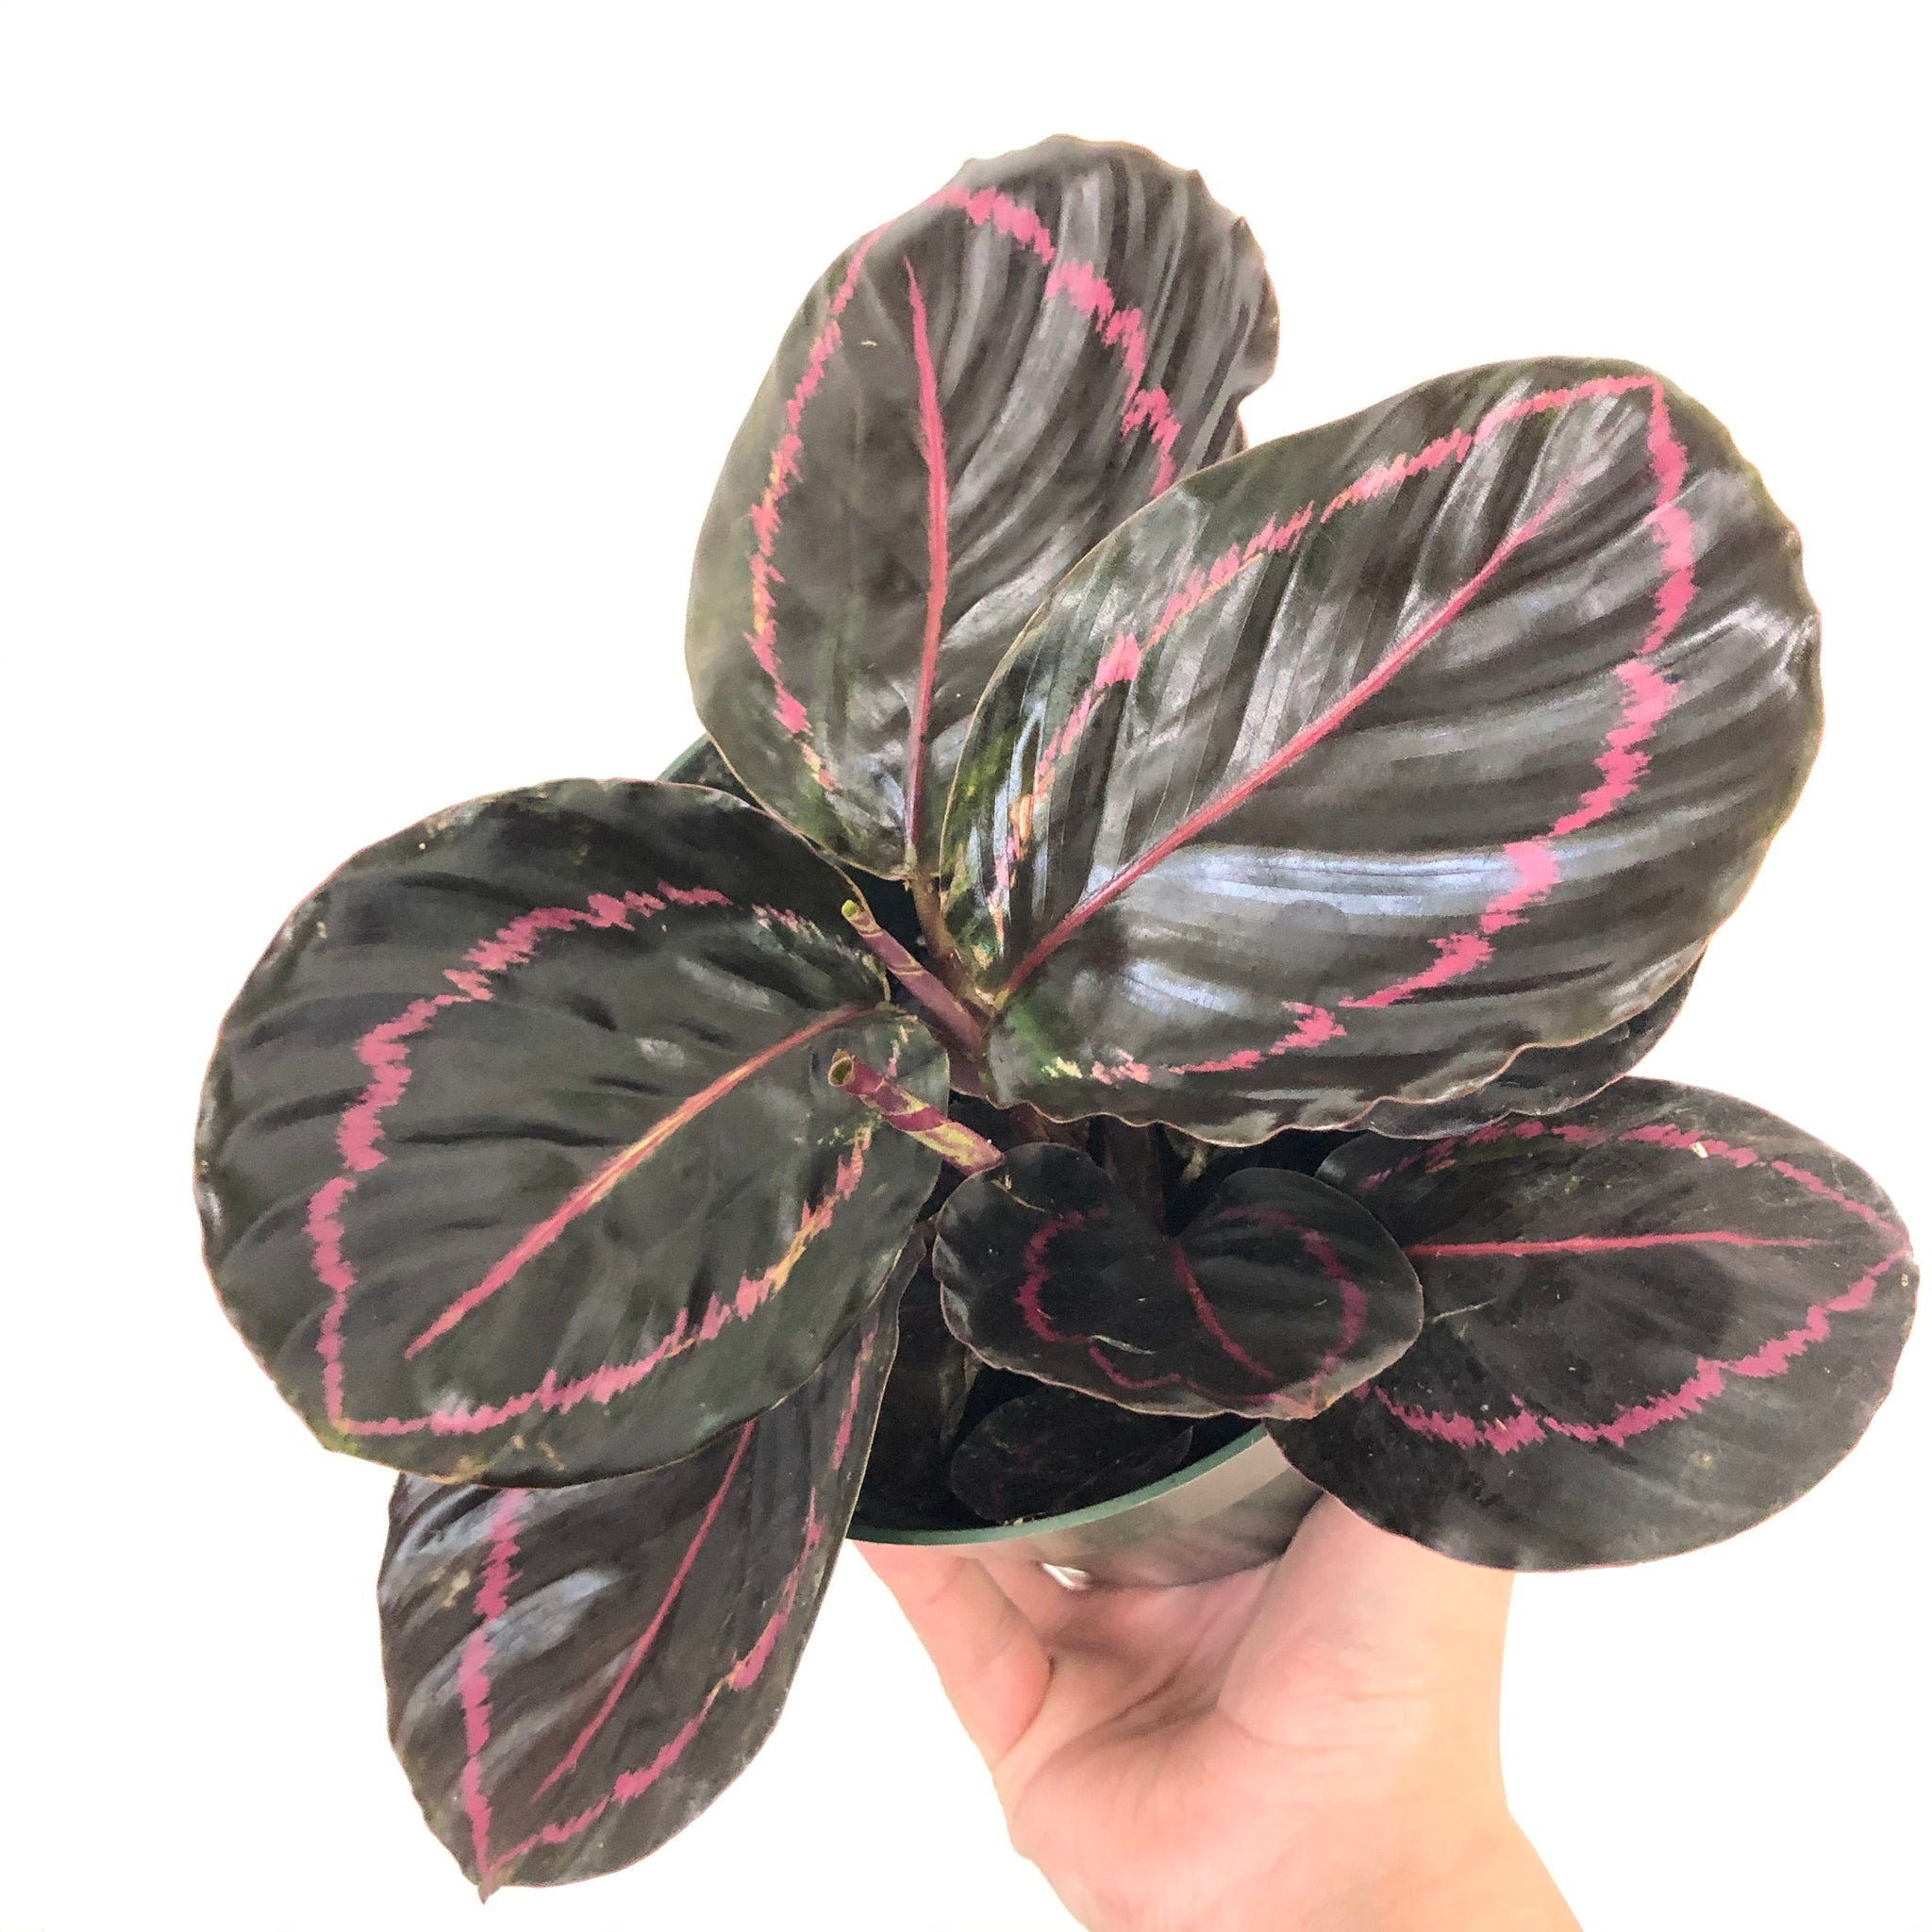 Calathea 'Dottie' 6in